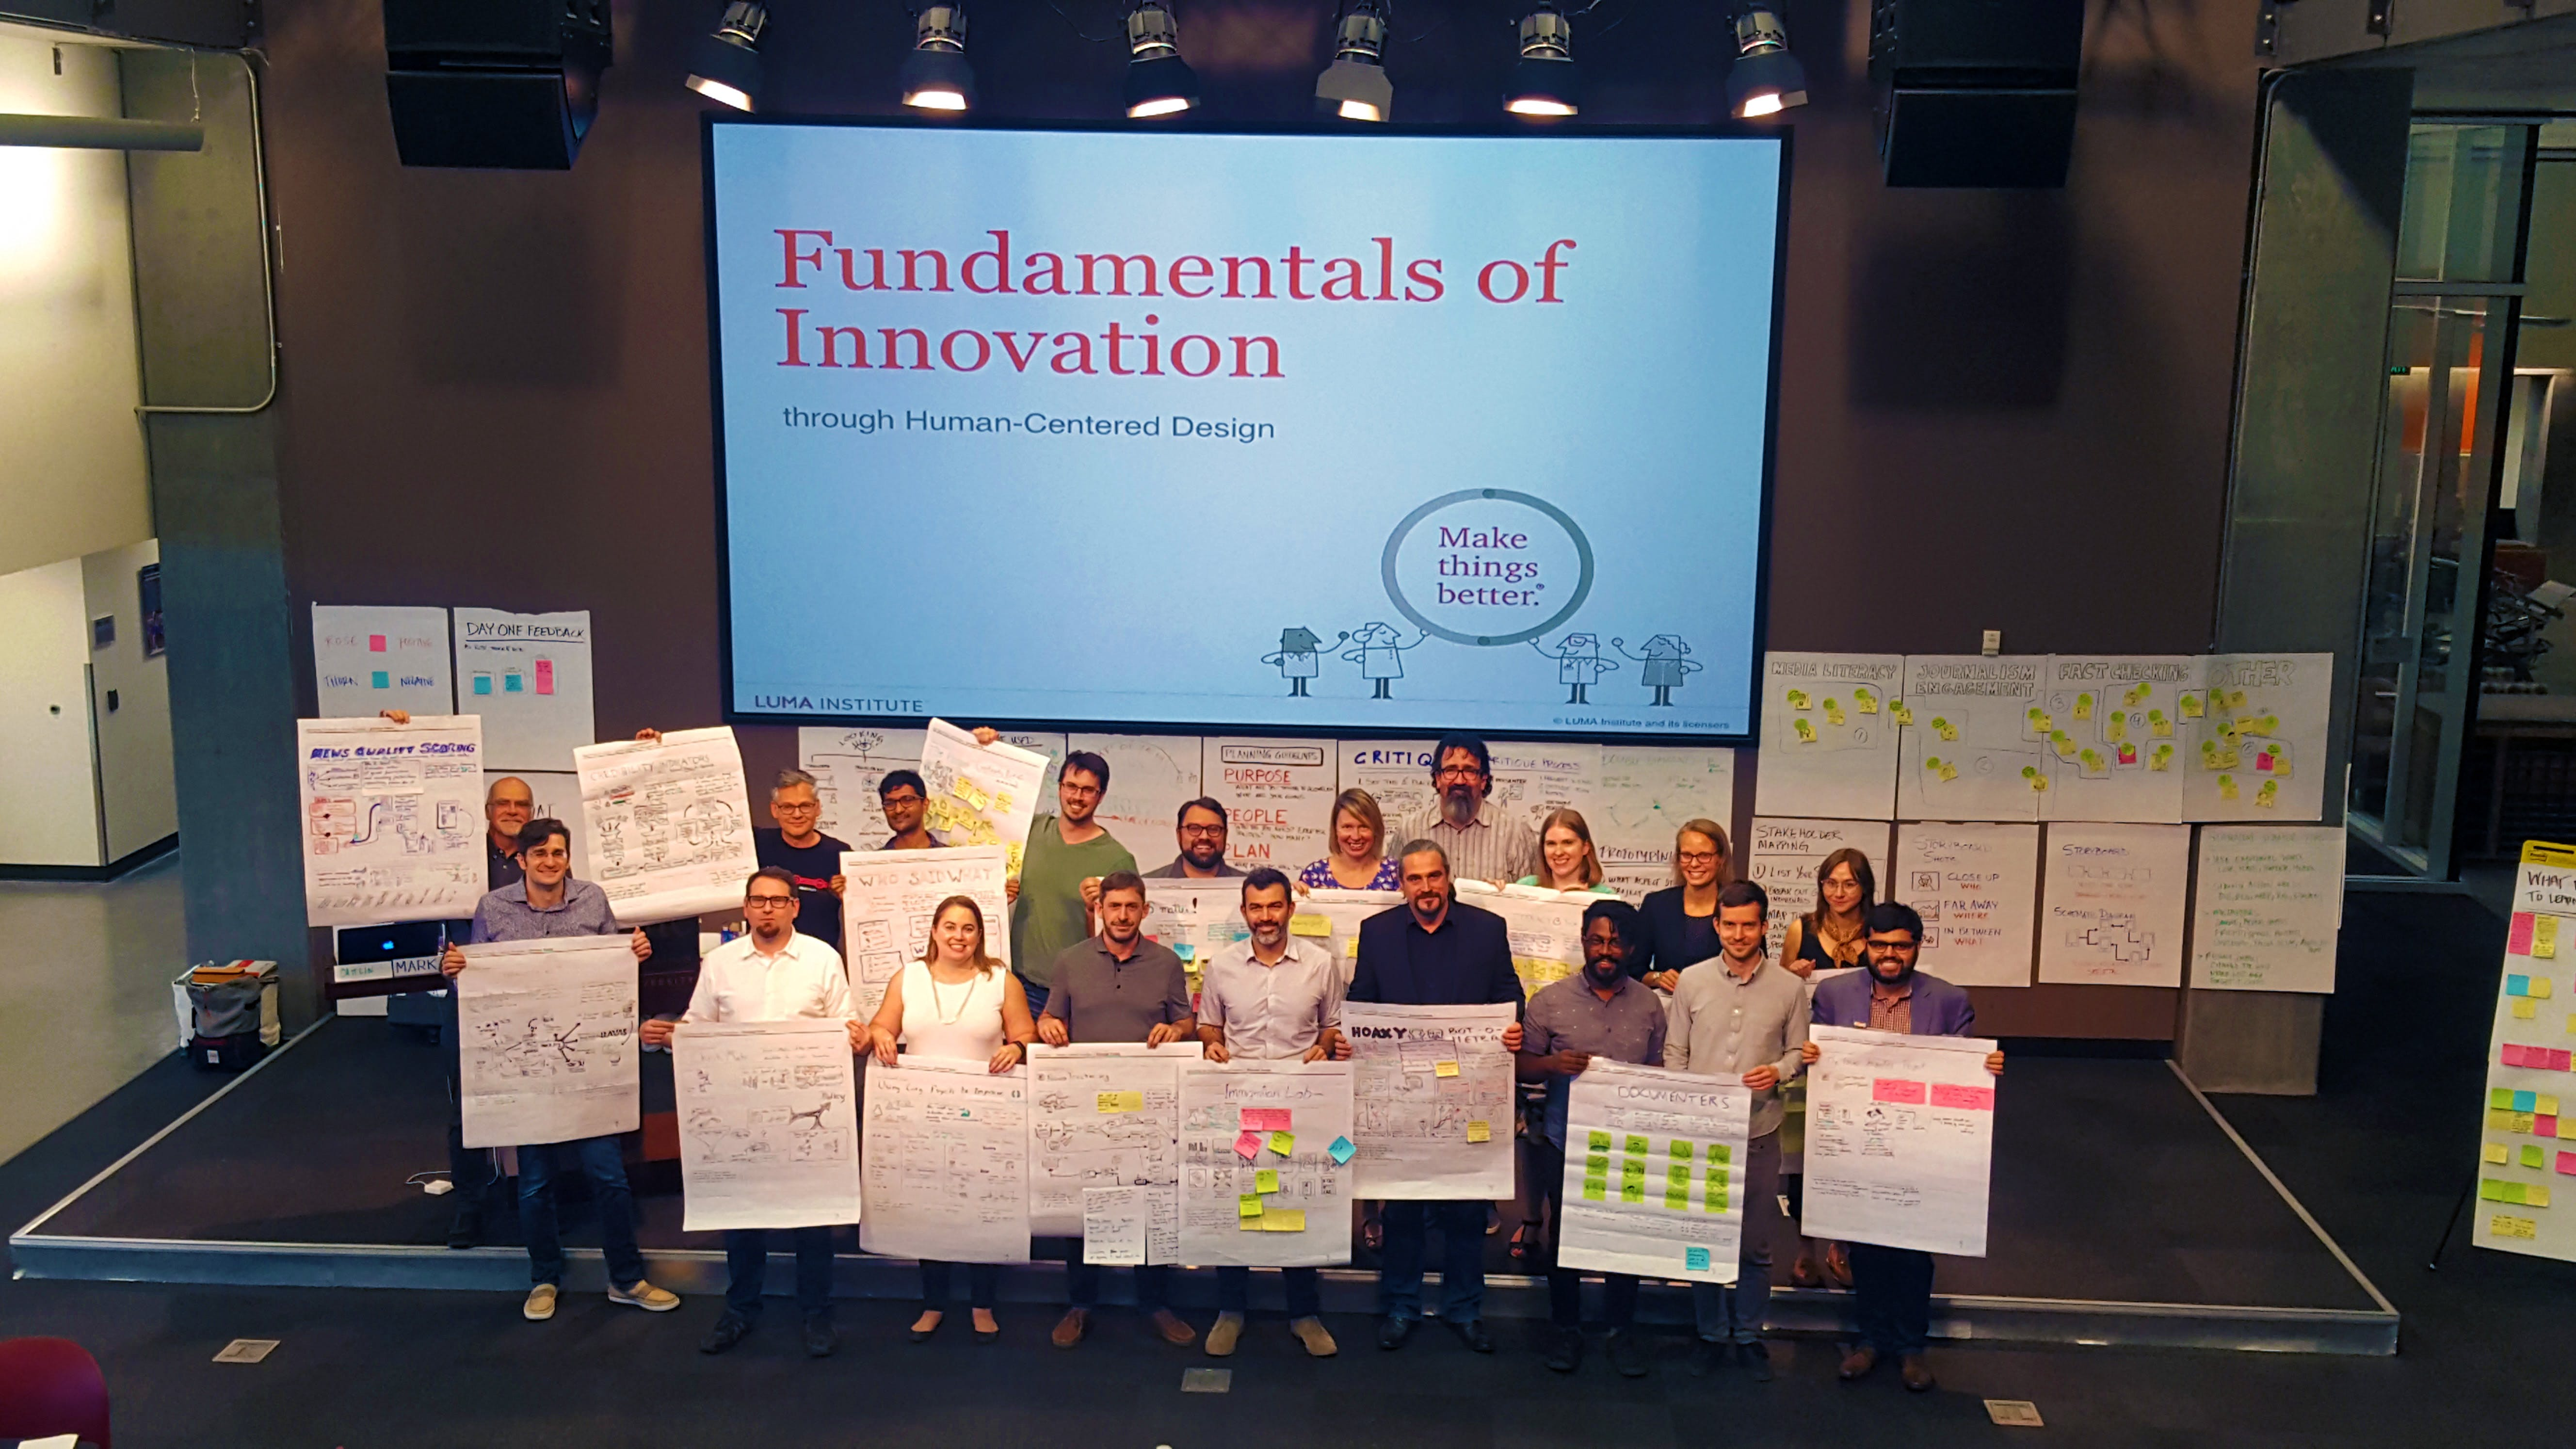 <p><em>The winners of the 2017 Knight Prototype Fund open call completed LUMA human-centered design training in Phoenix this week.</em></p>